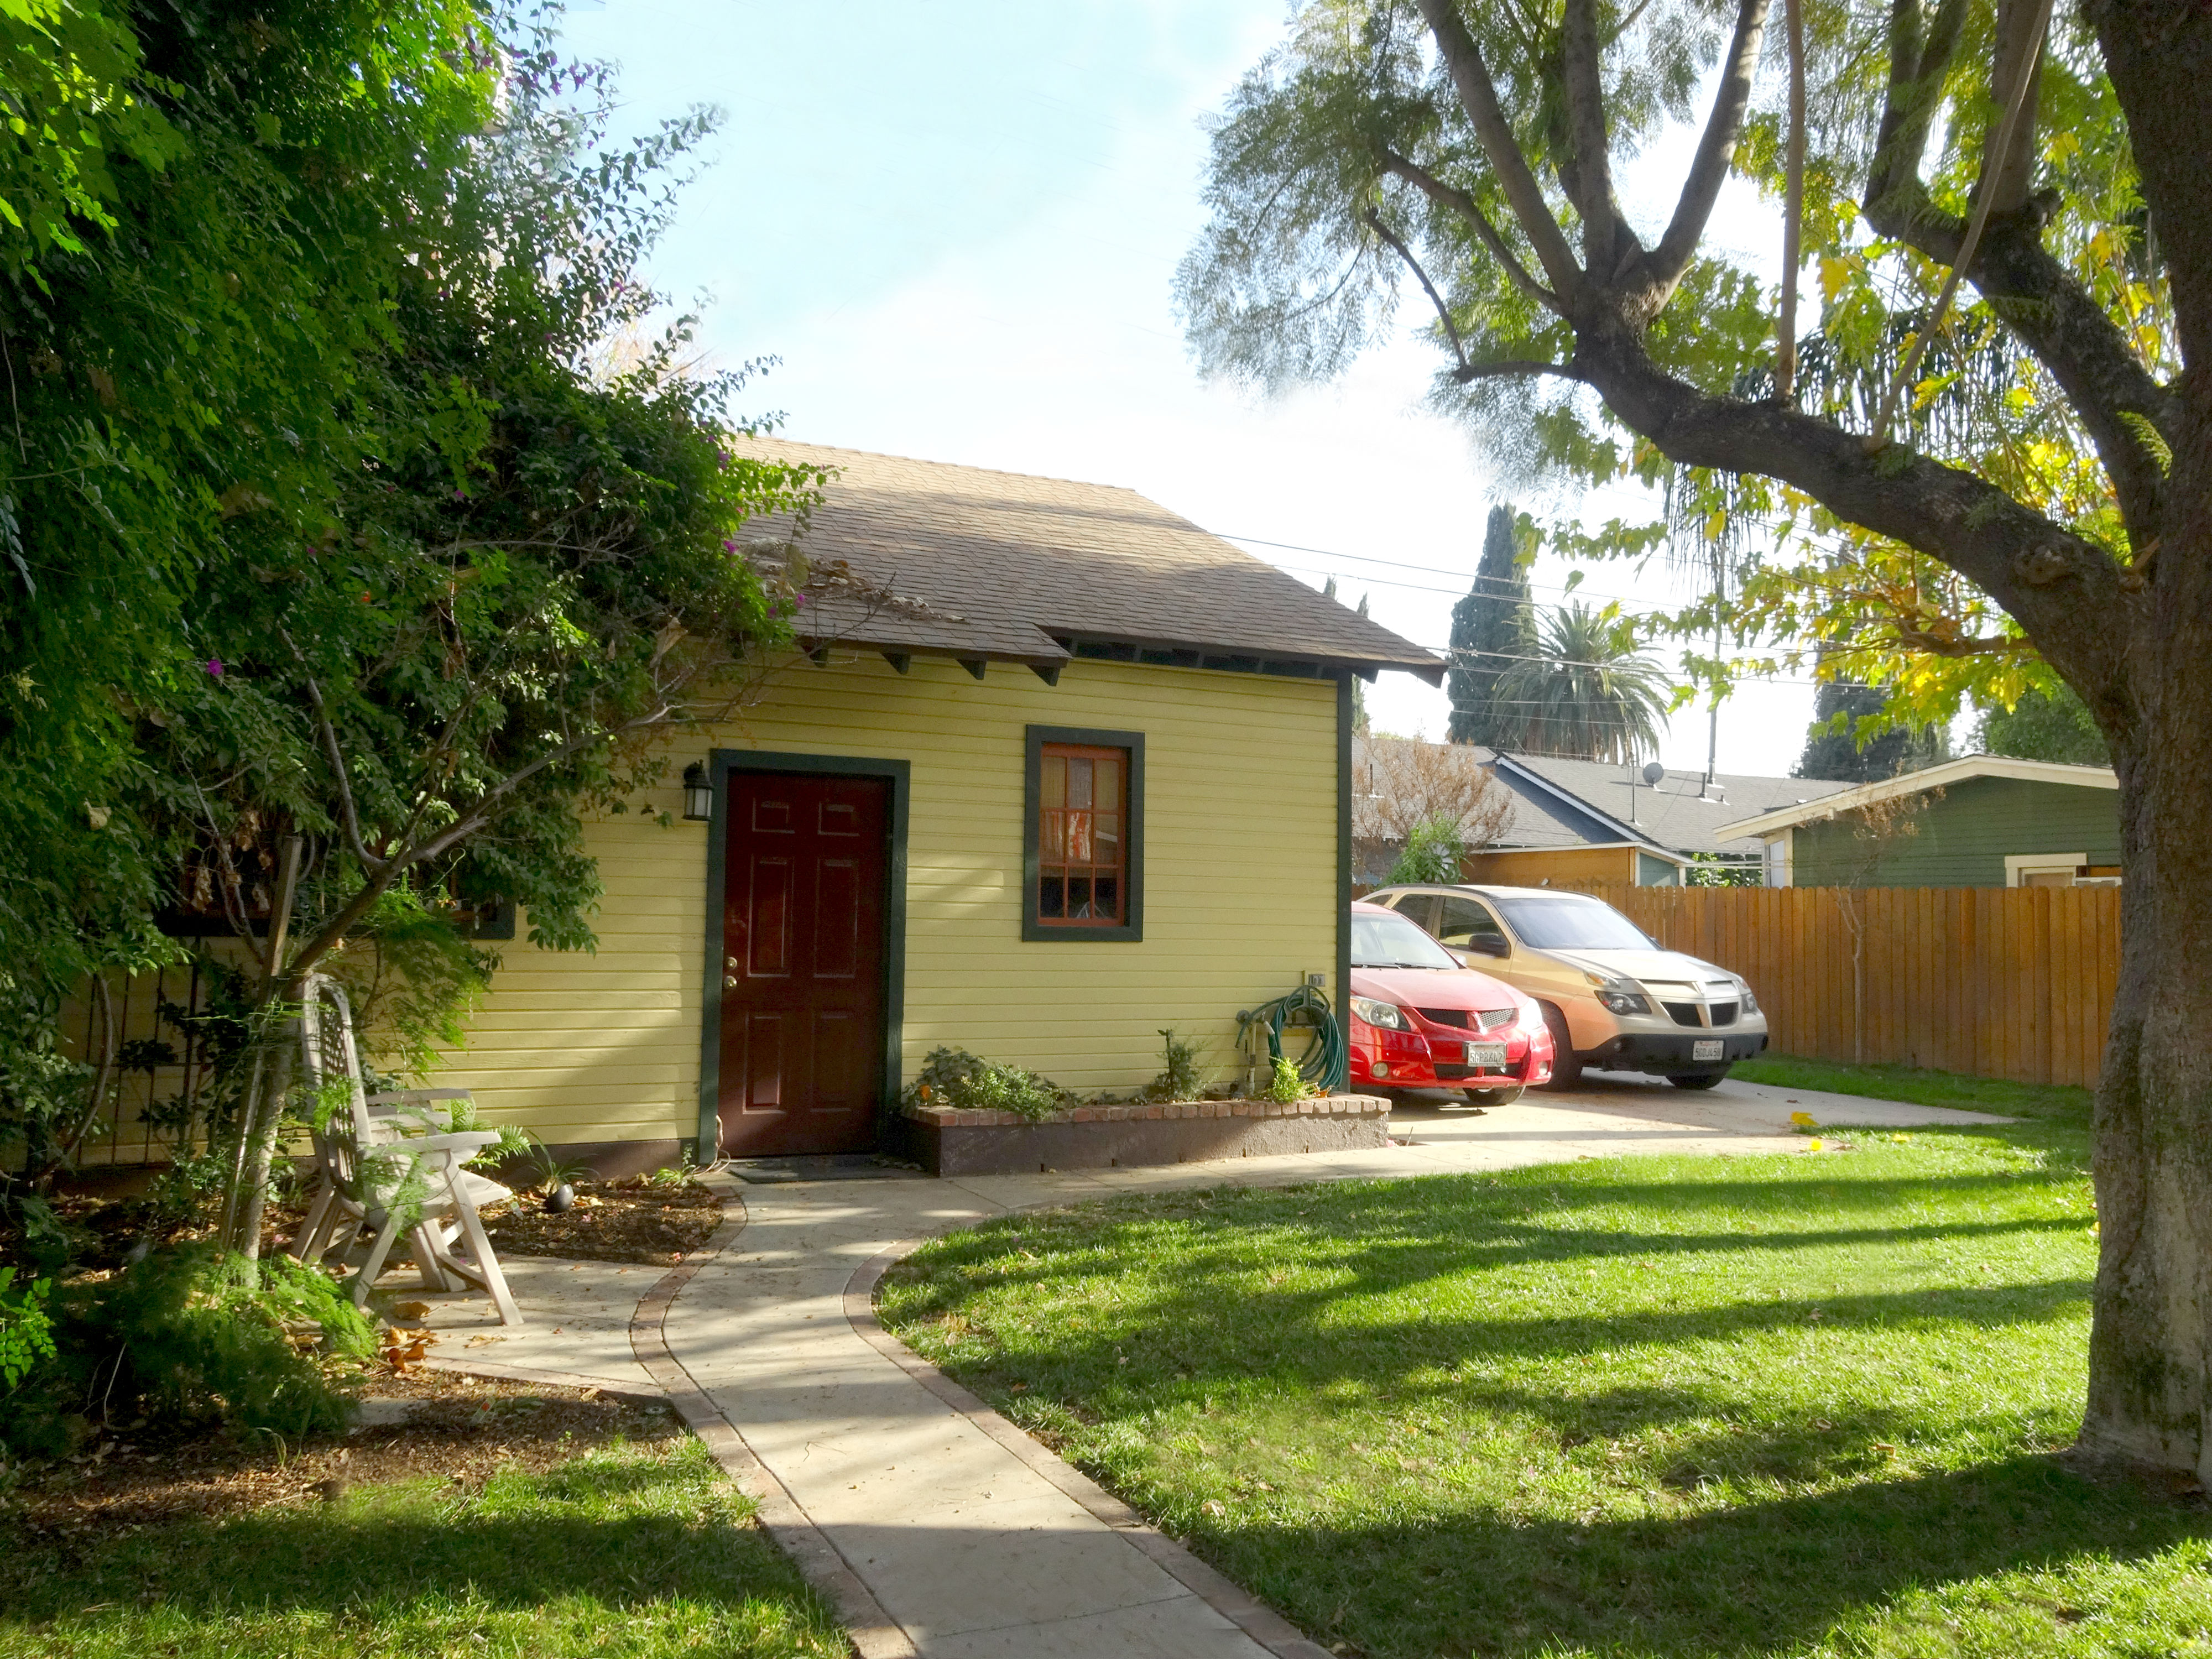 Portion Of Backyard With Mature Shade Tree And Side View Of The Detached 2  1/